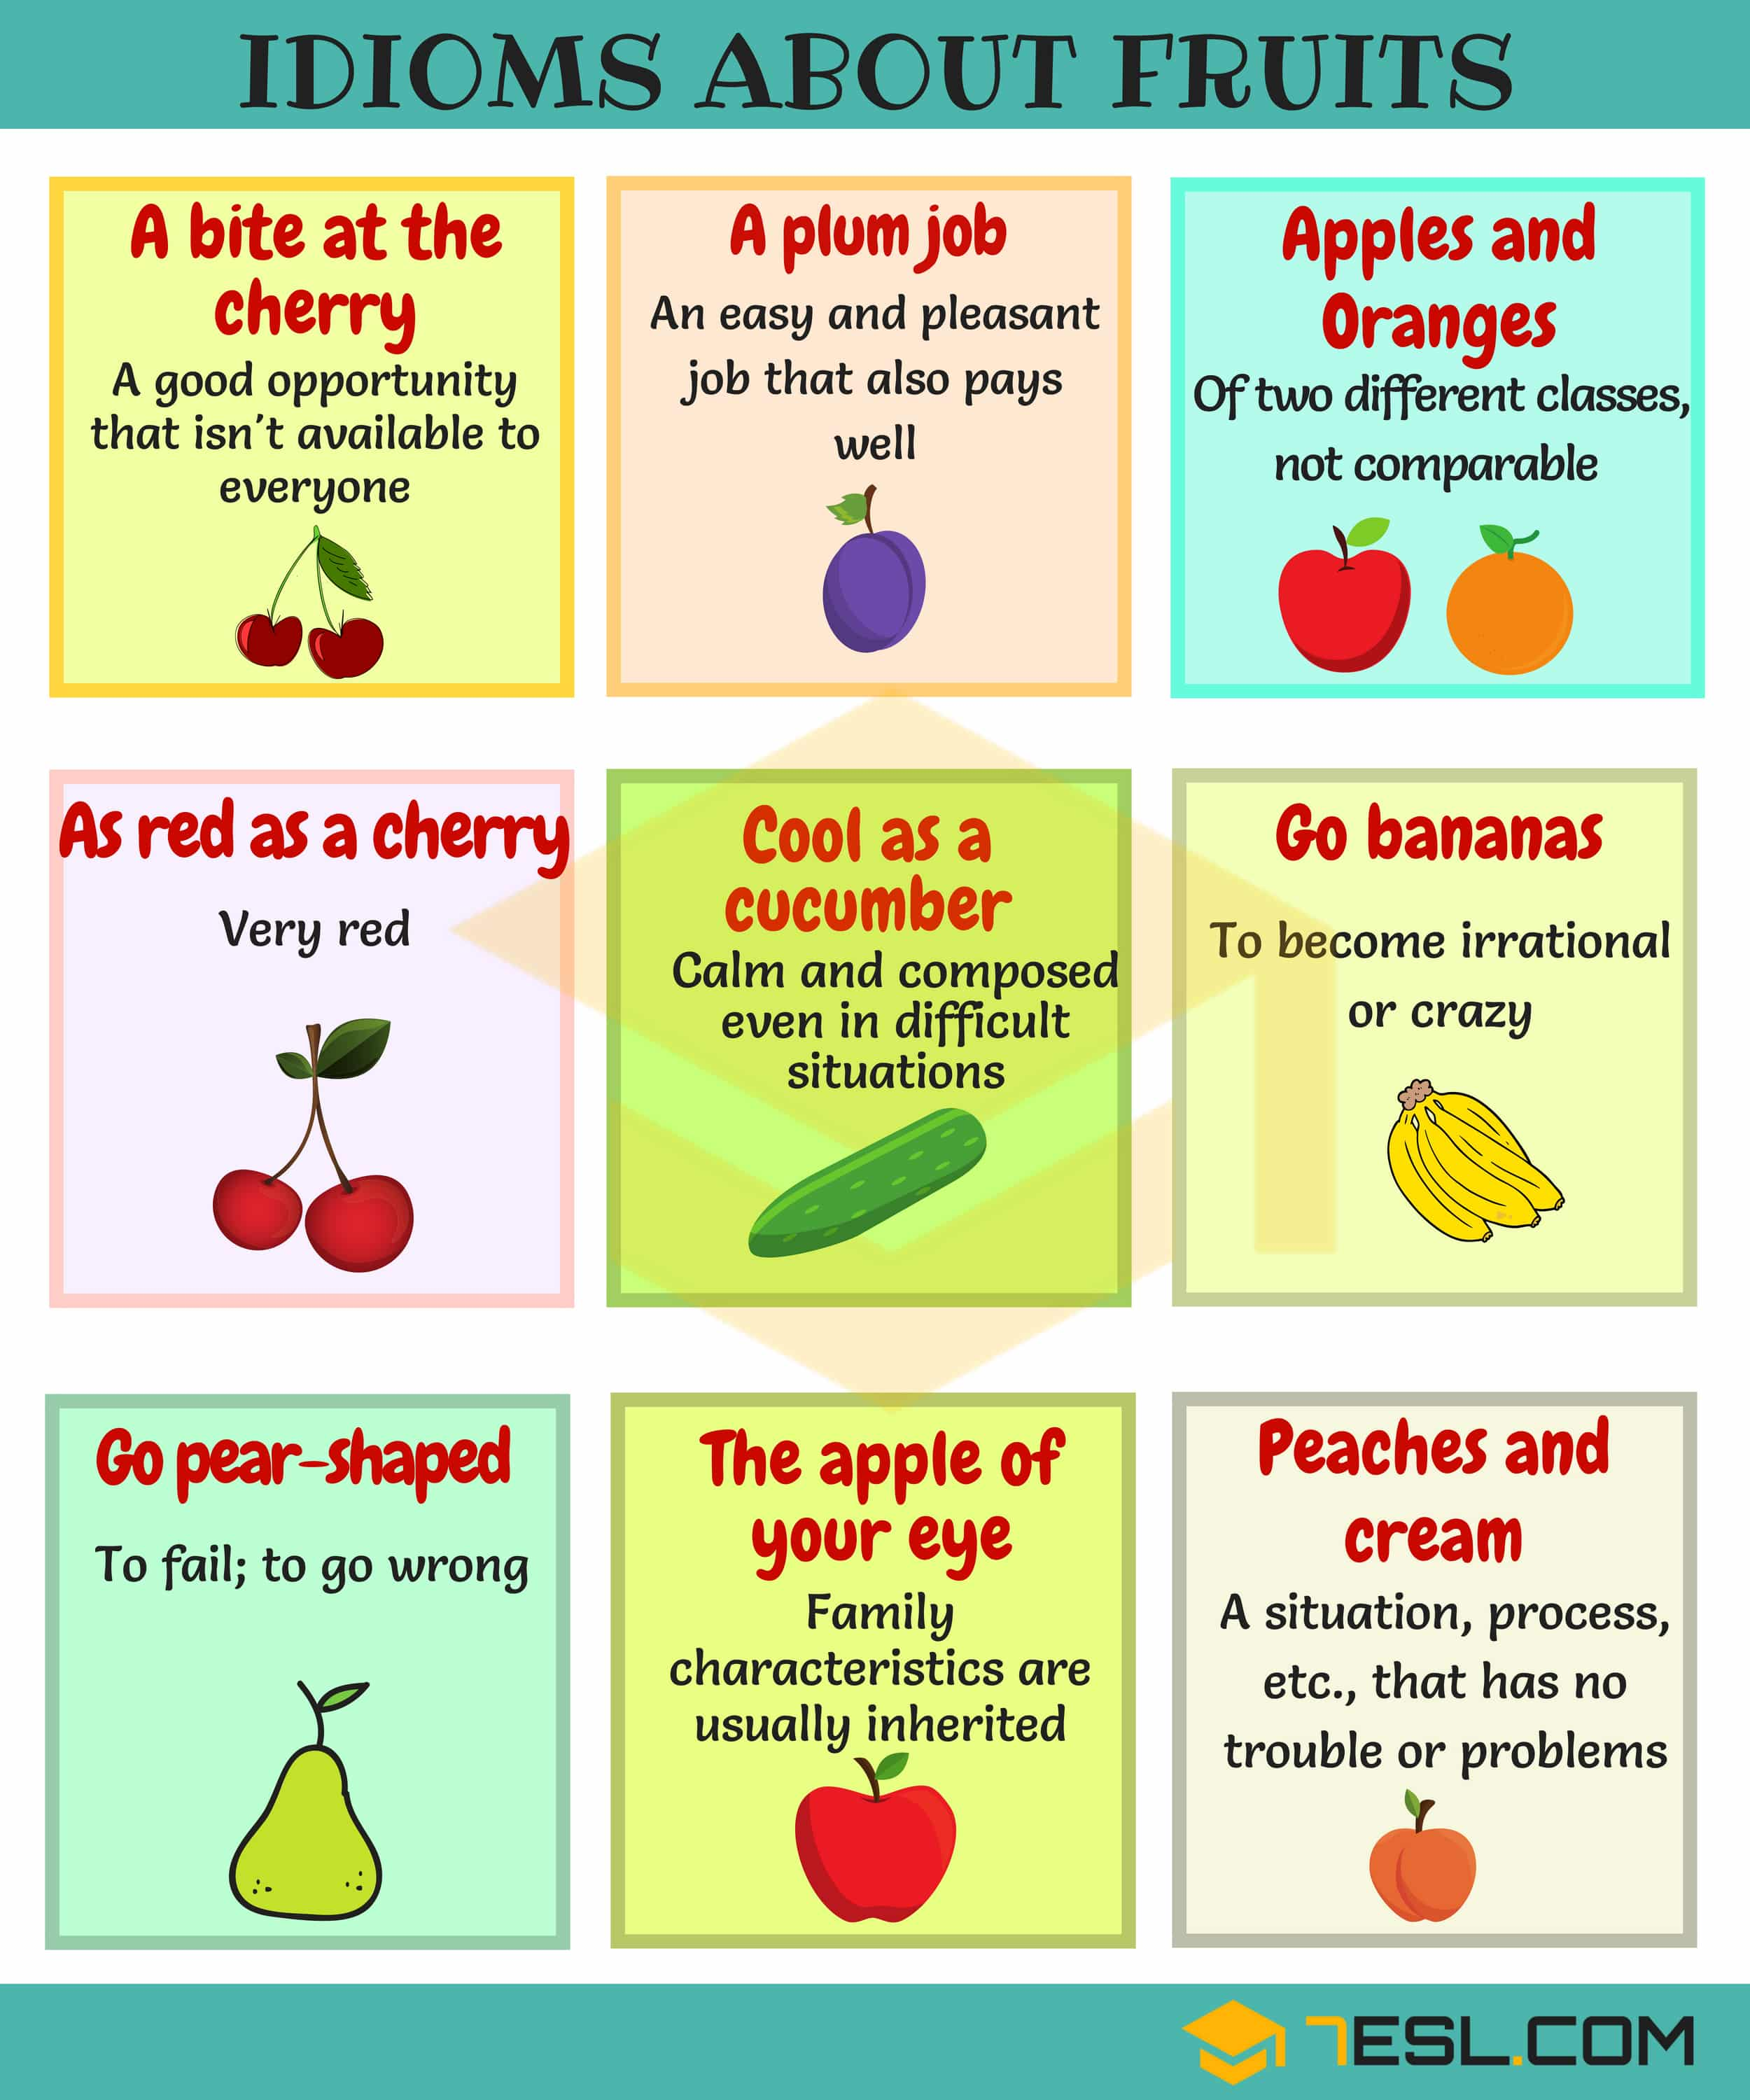 Fruit Idioms: 25 Useful Idioms about Fruits in English